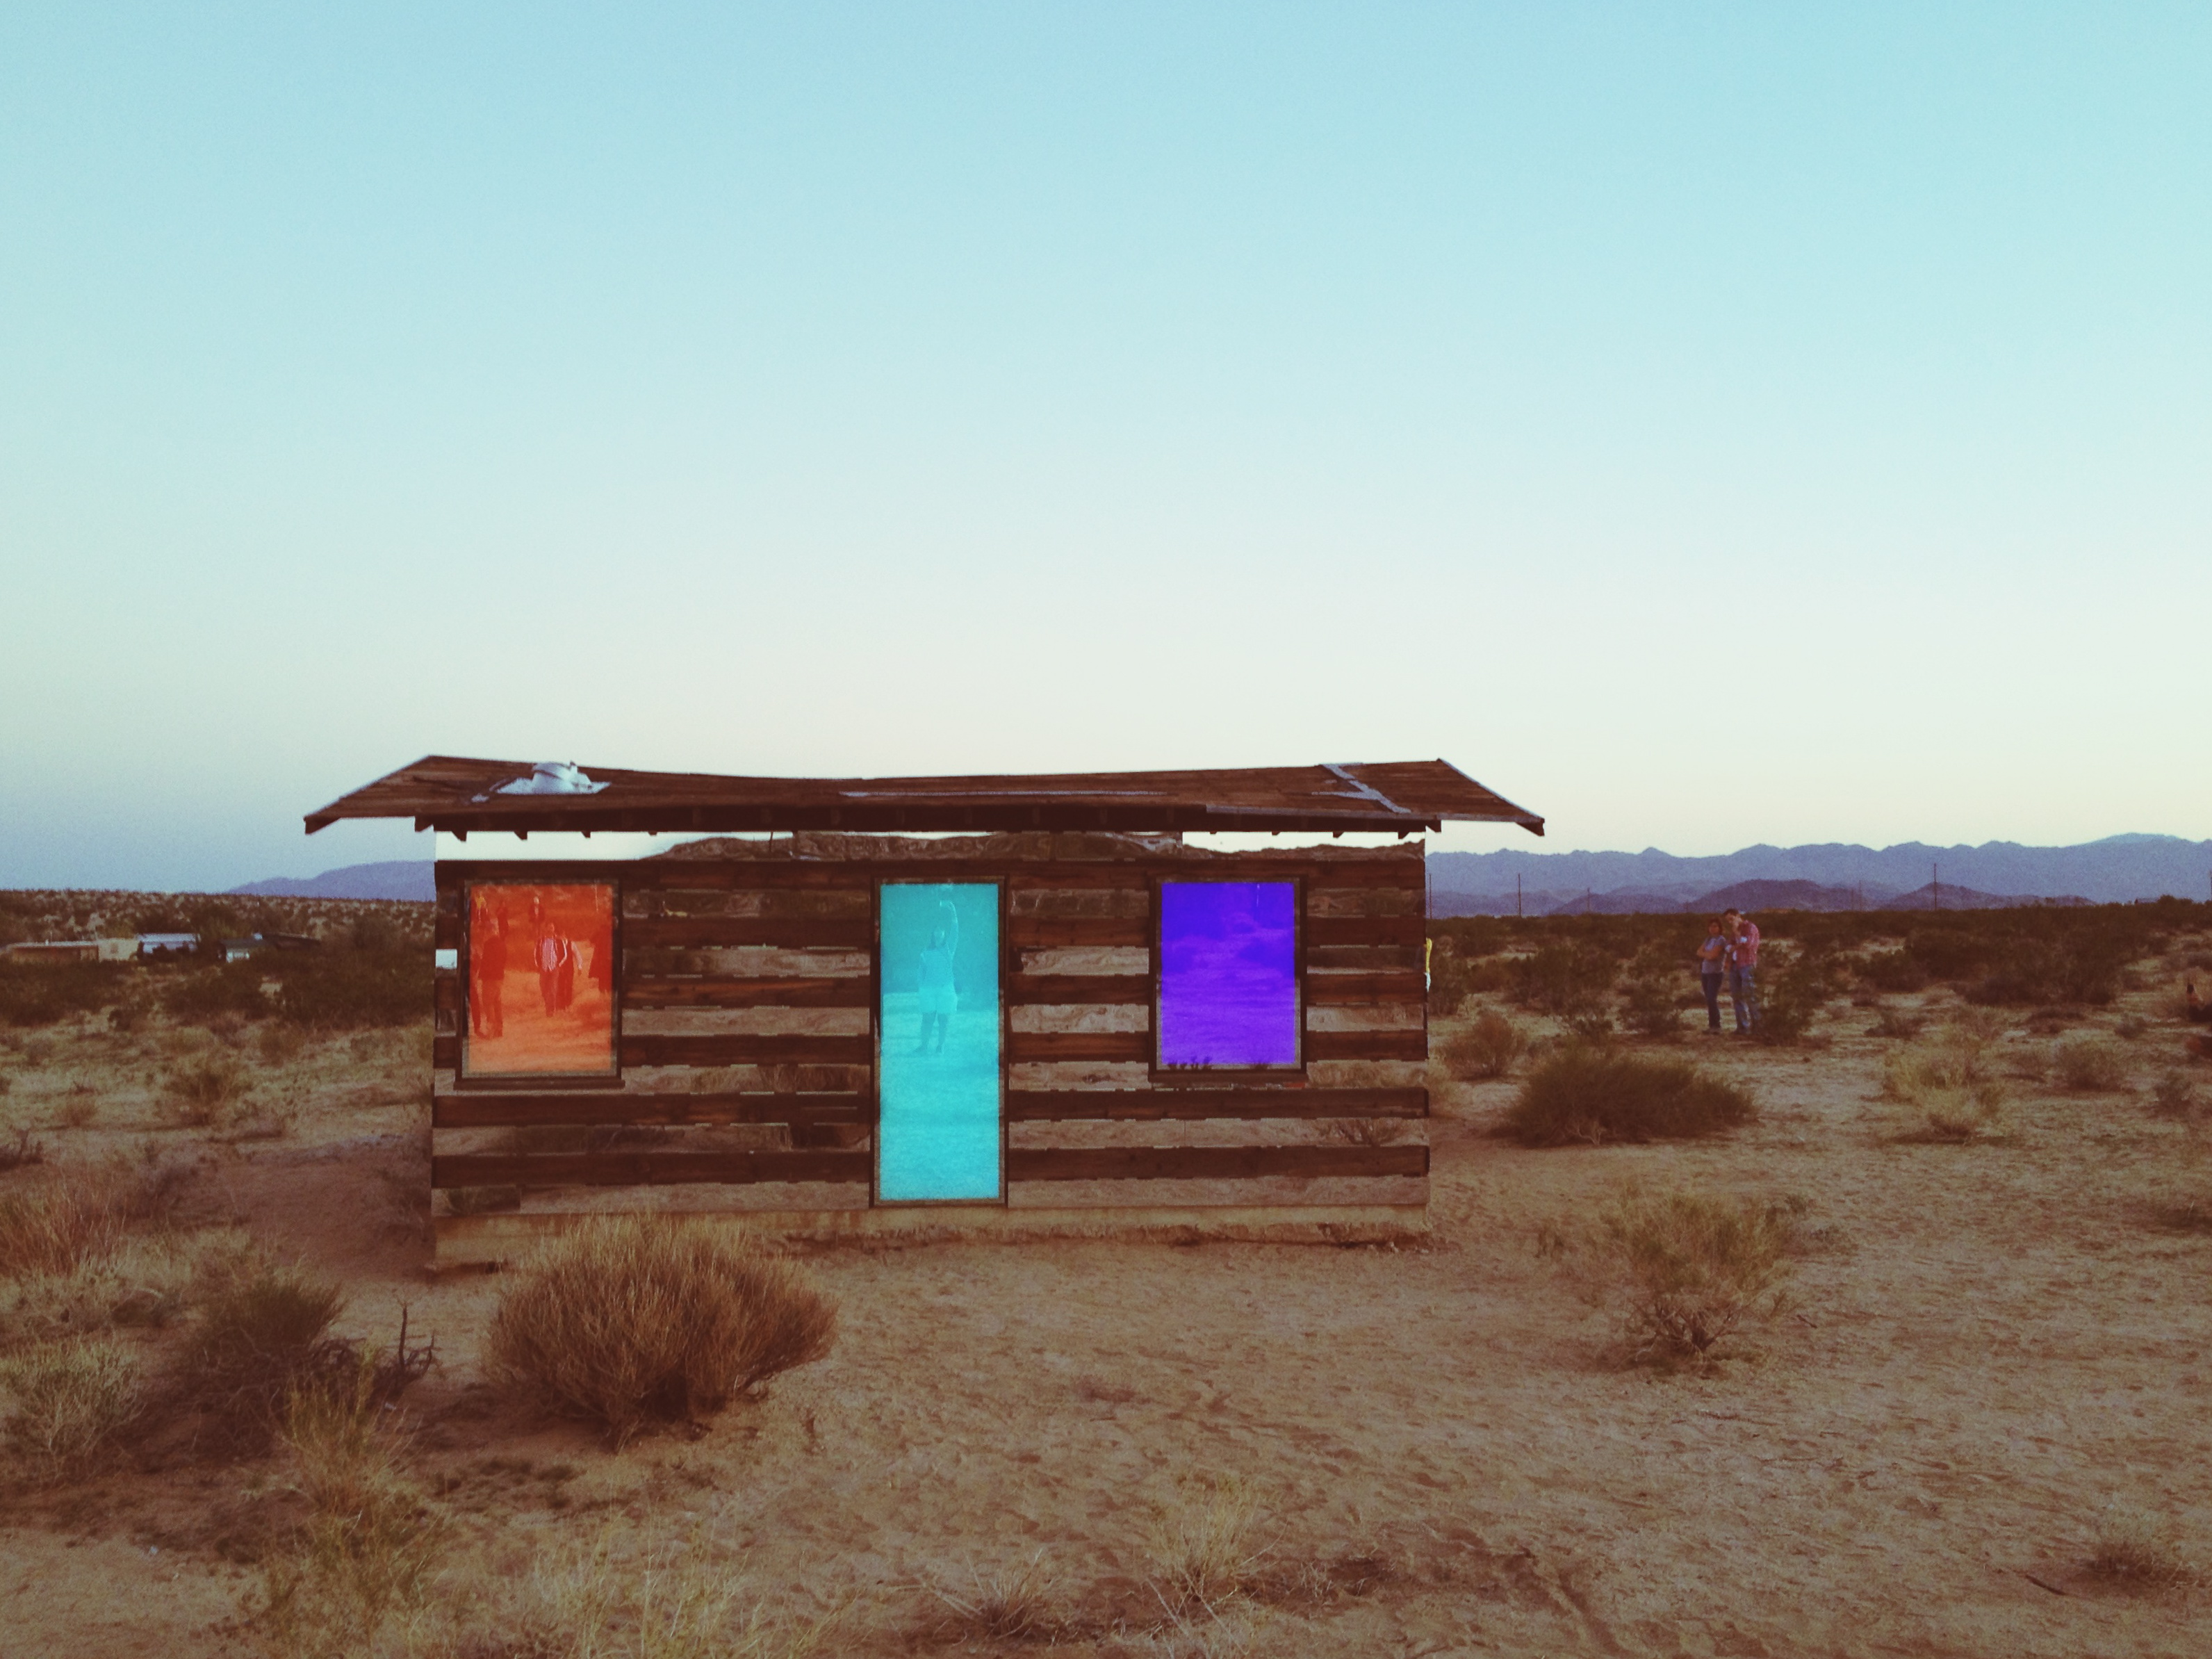 Lucid-Stead-by-Phillip-K-Smith-III-in-Joshua-Tree-10